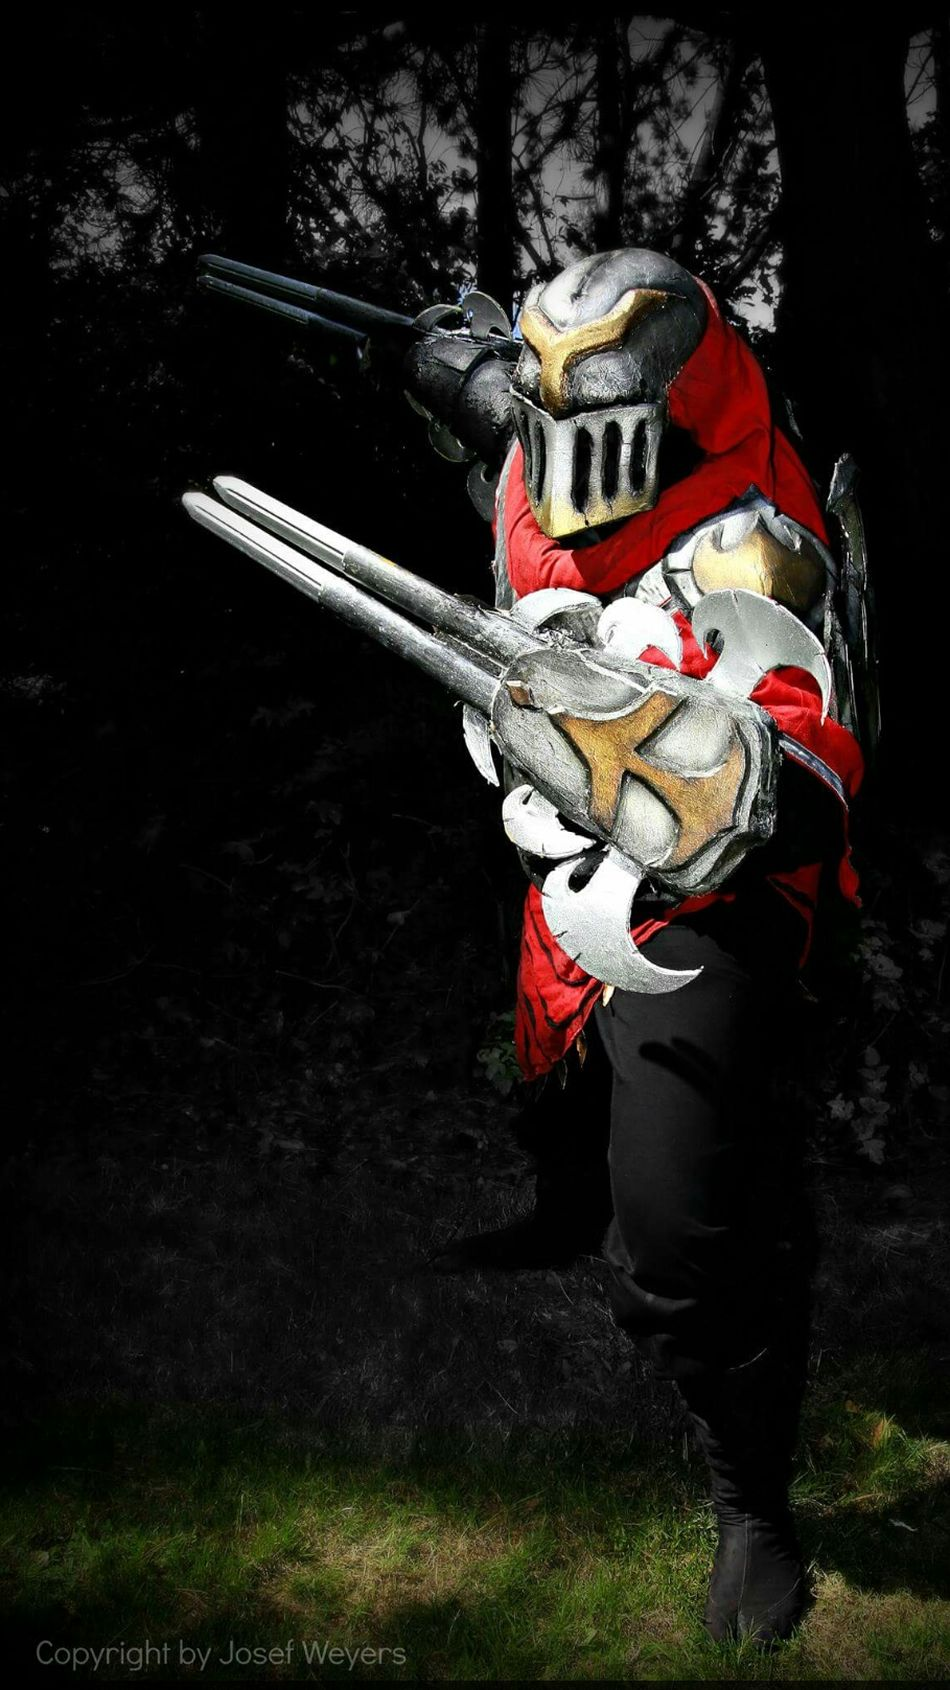 Cosplay Cosplayers Hi! League Of Legends Zed Cosplayer Cosplaying